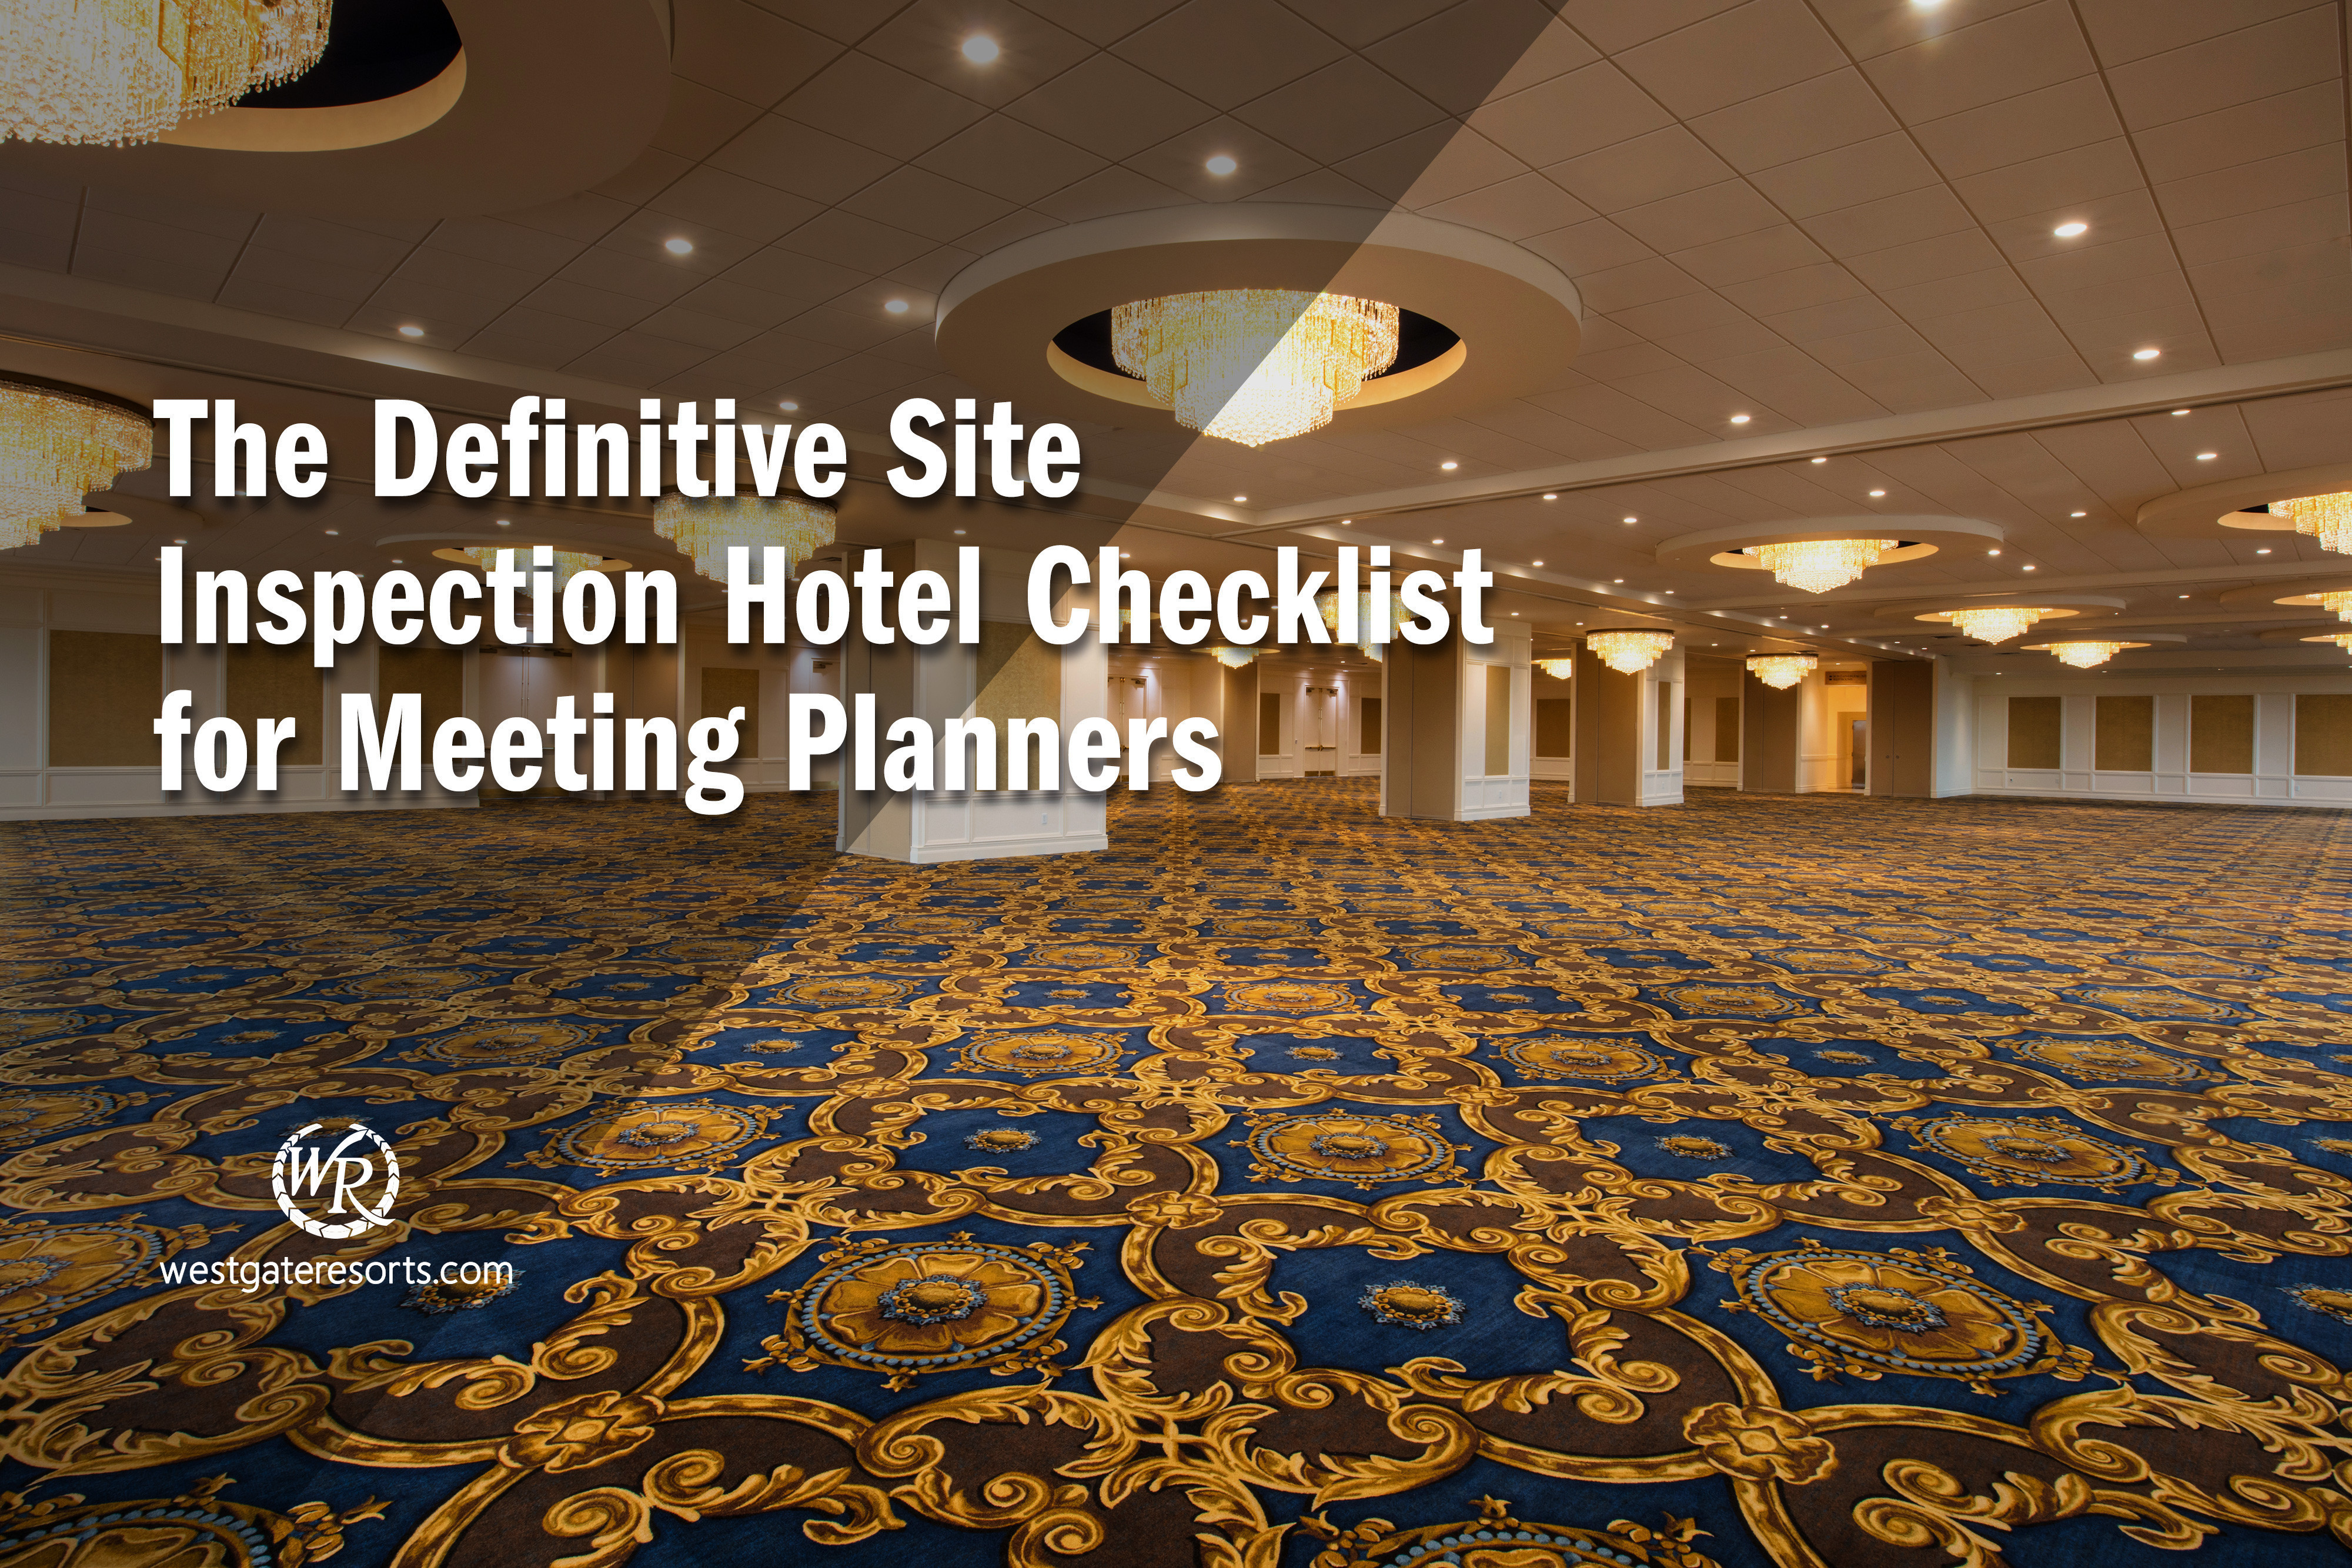 The Definitive Site Inspection Hotel Checklist for Meeting Planners